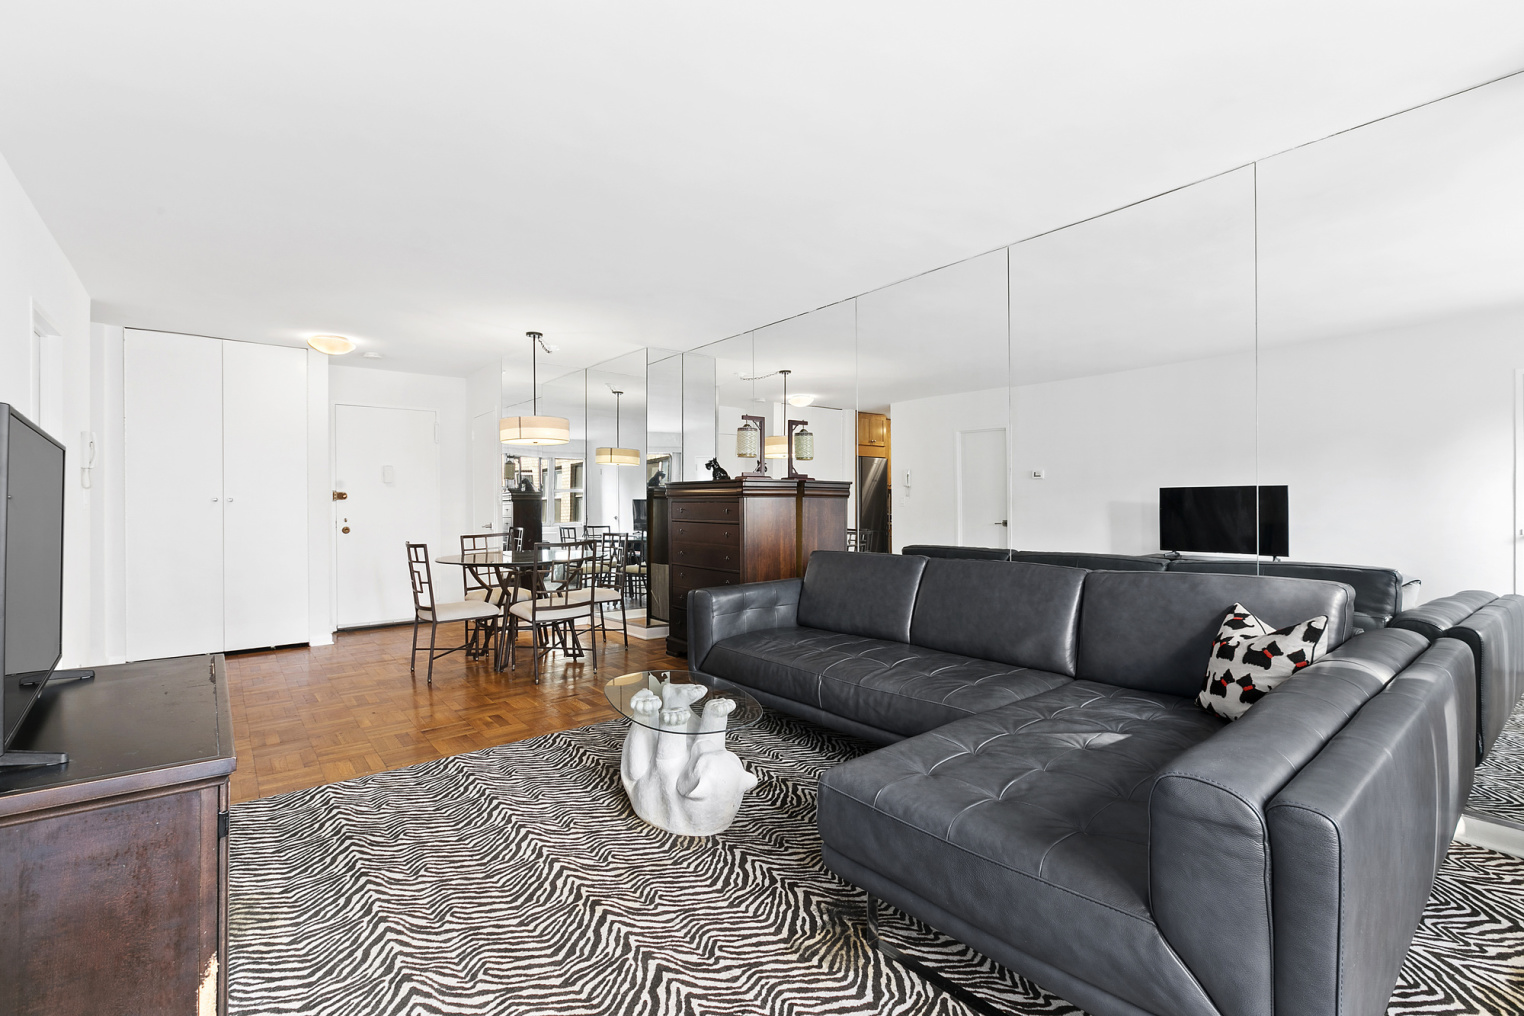 Apartment for sale at 77 West 55th Street, Apt 20-H